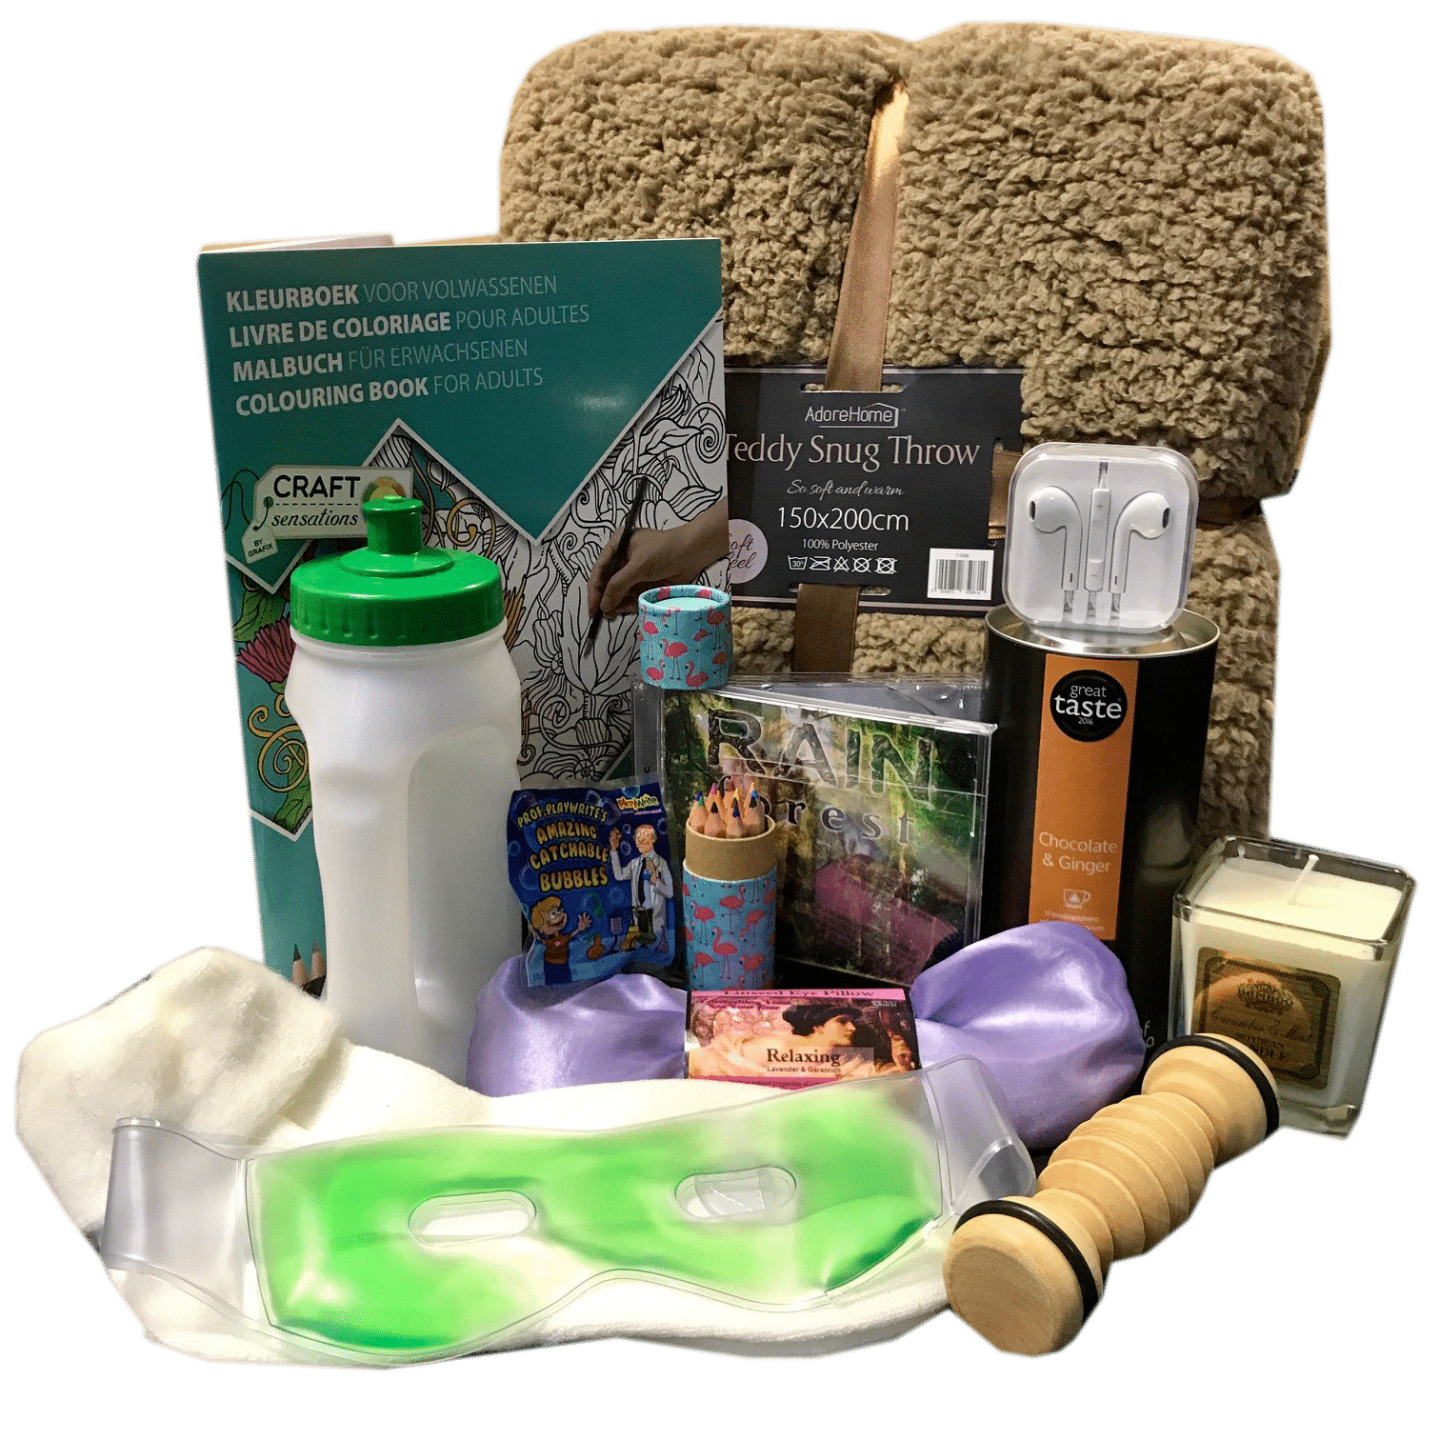 The Comfort Box from Cancer Care Parcel